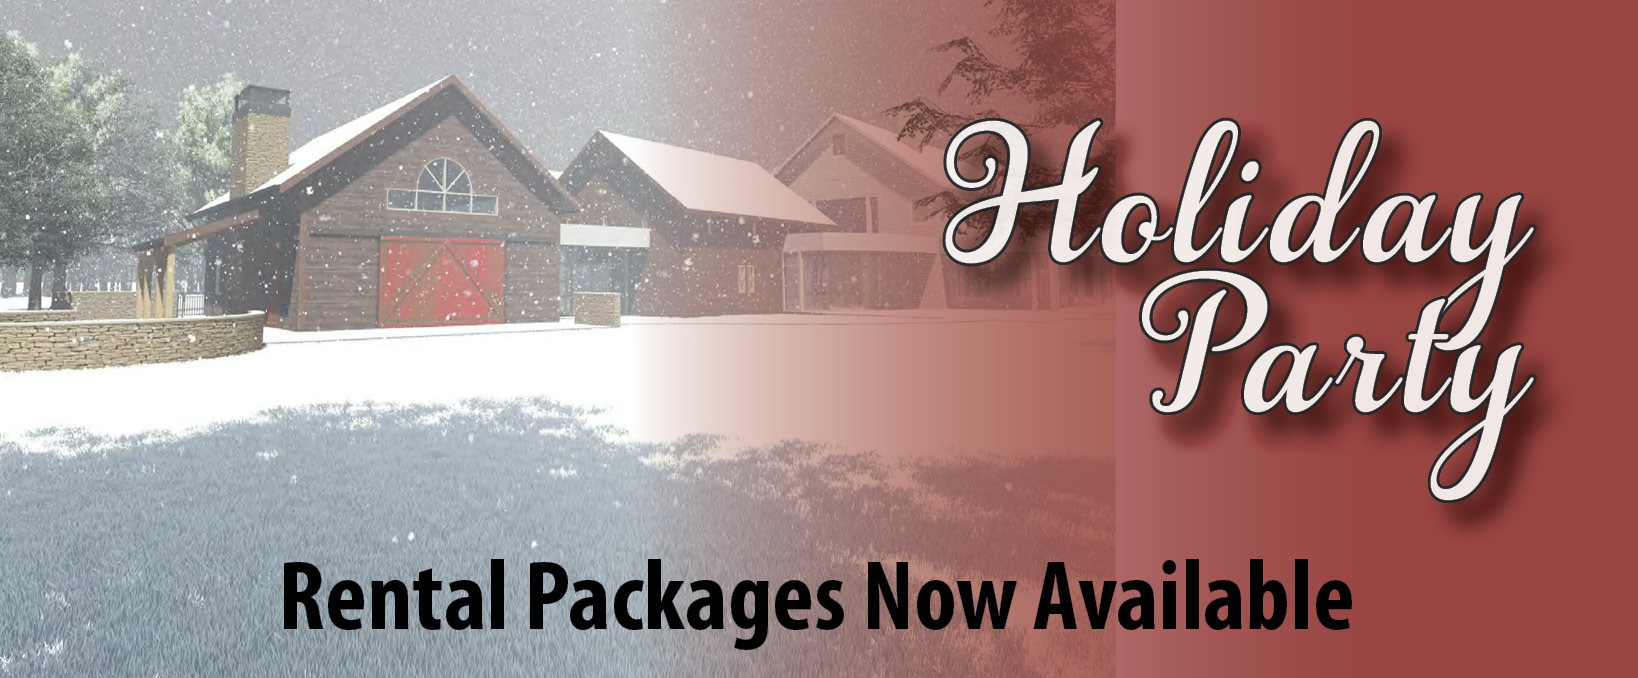 Holiday Party Rental packages